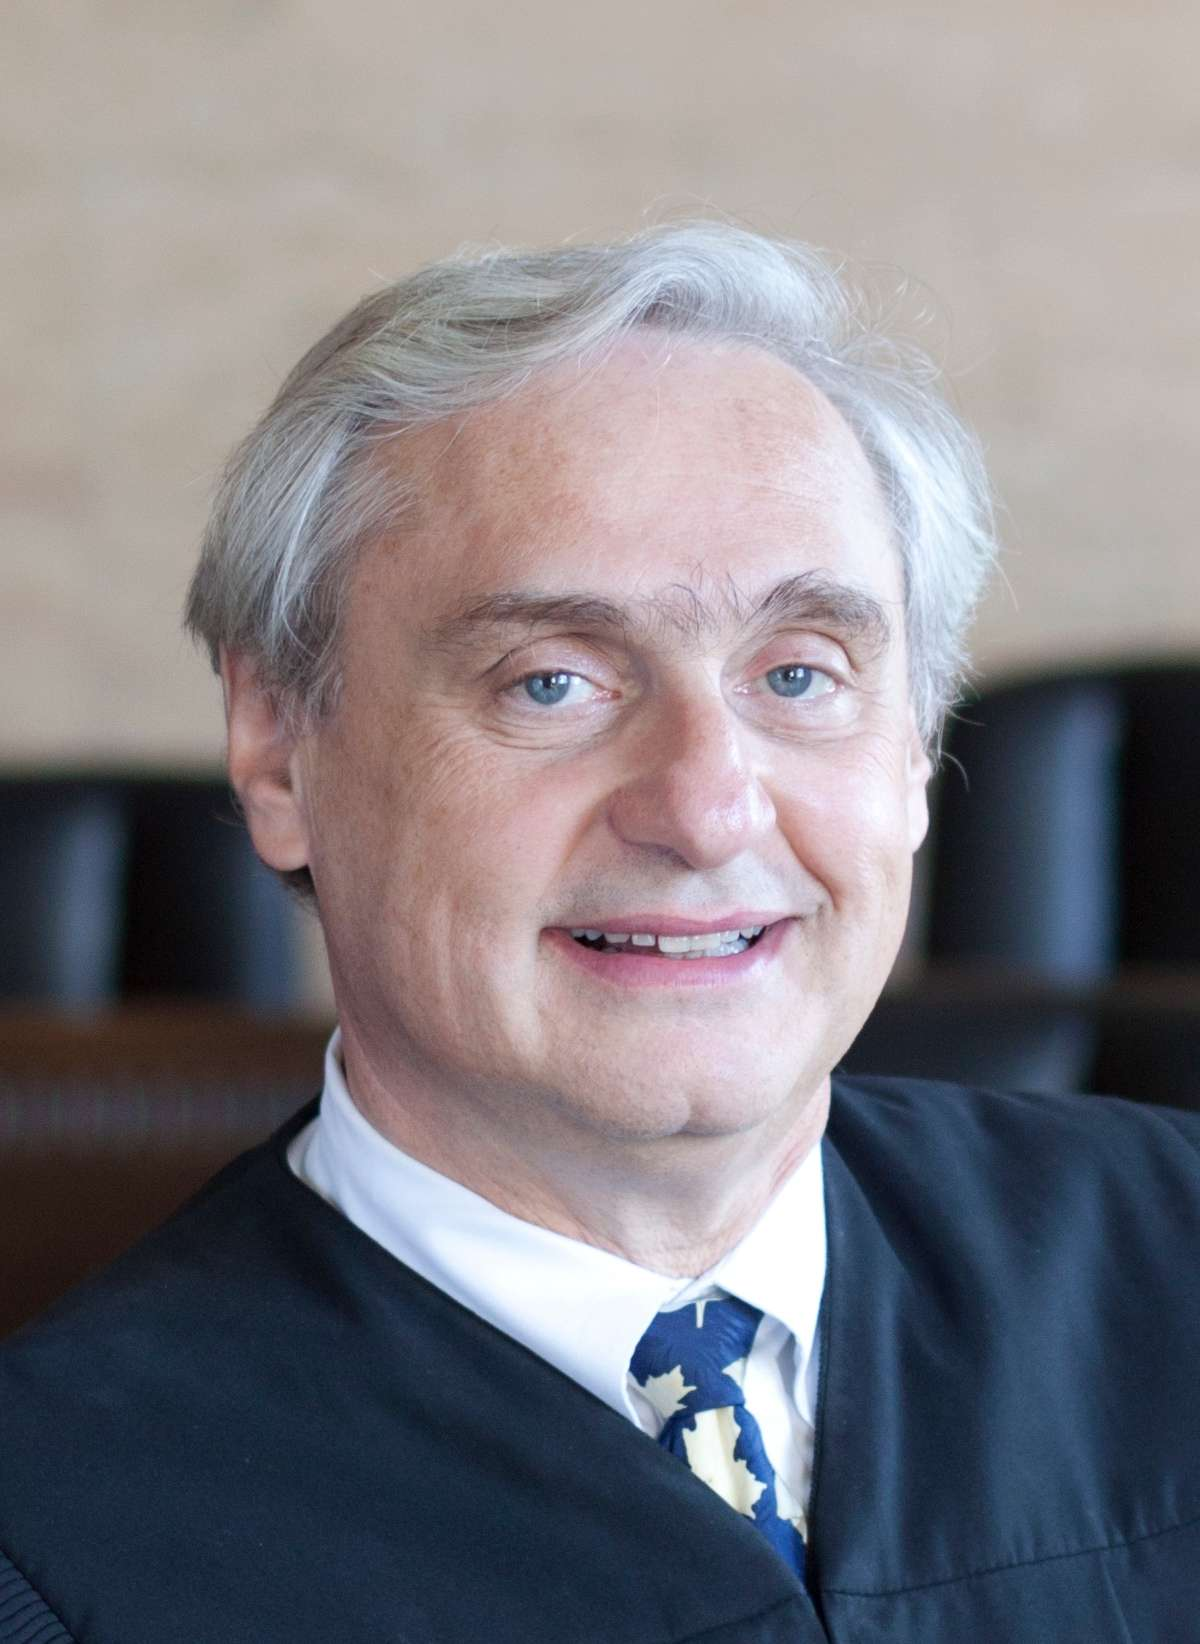 Judge Alex Kozinski, U.S. Court of Appeals for the Ninth Circuit (official photo).